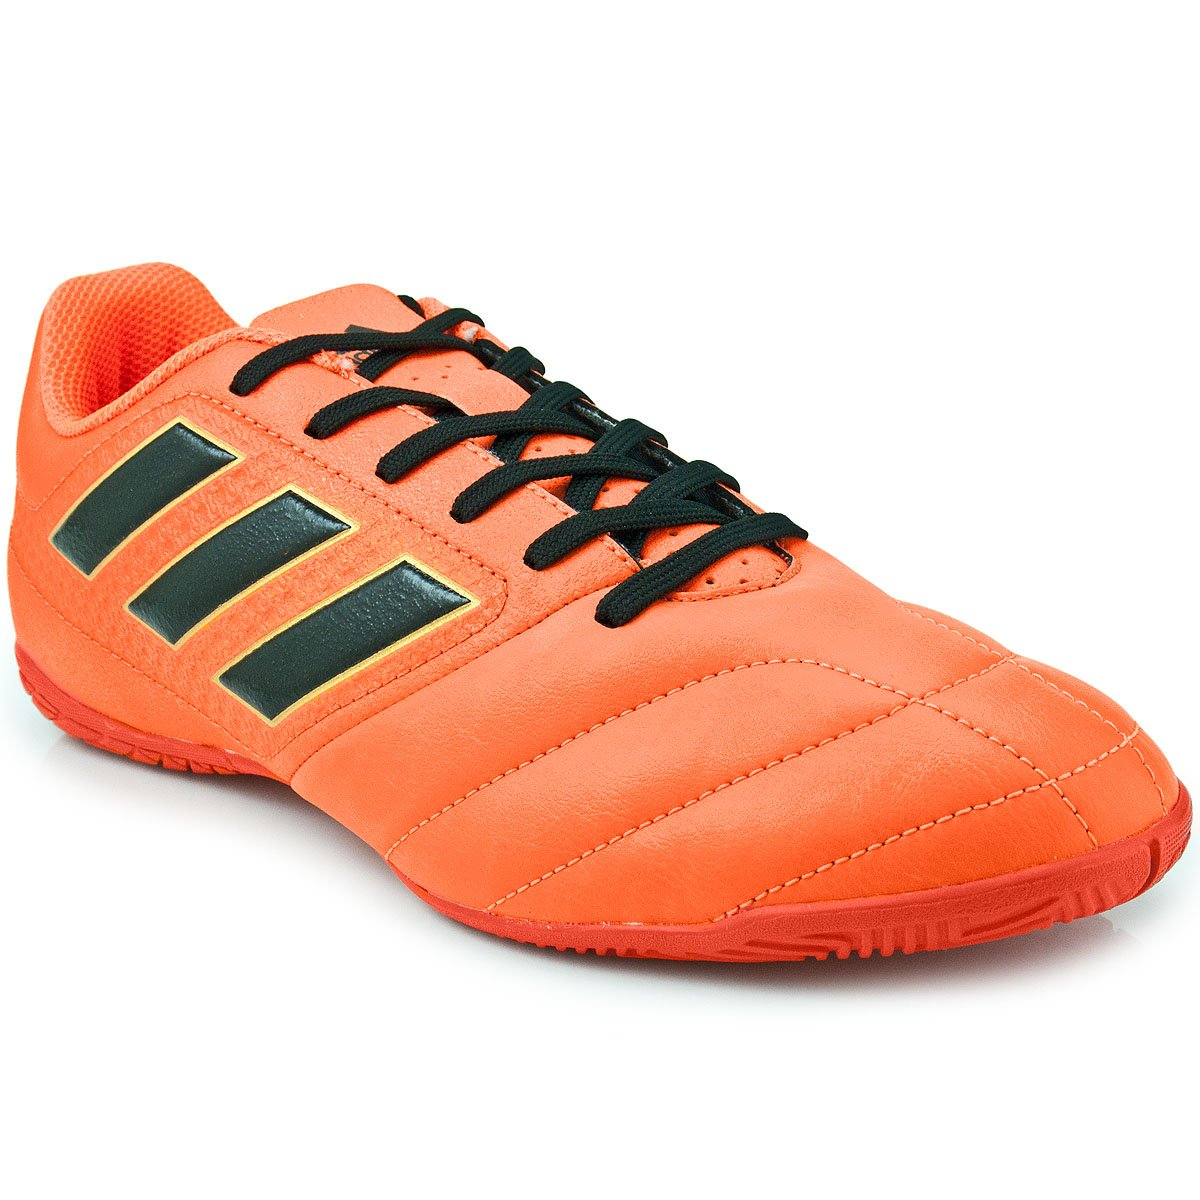 Chuteira Adidas Ace 17.4 IN  290ca7b357a2a